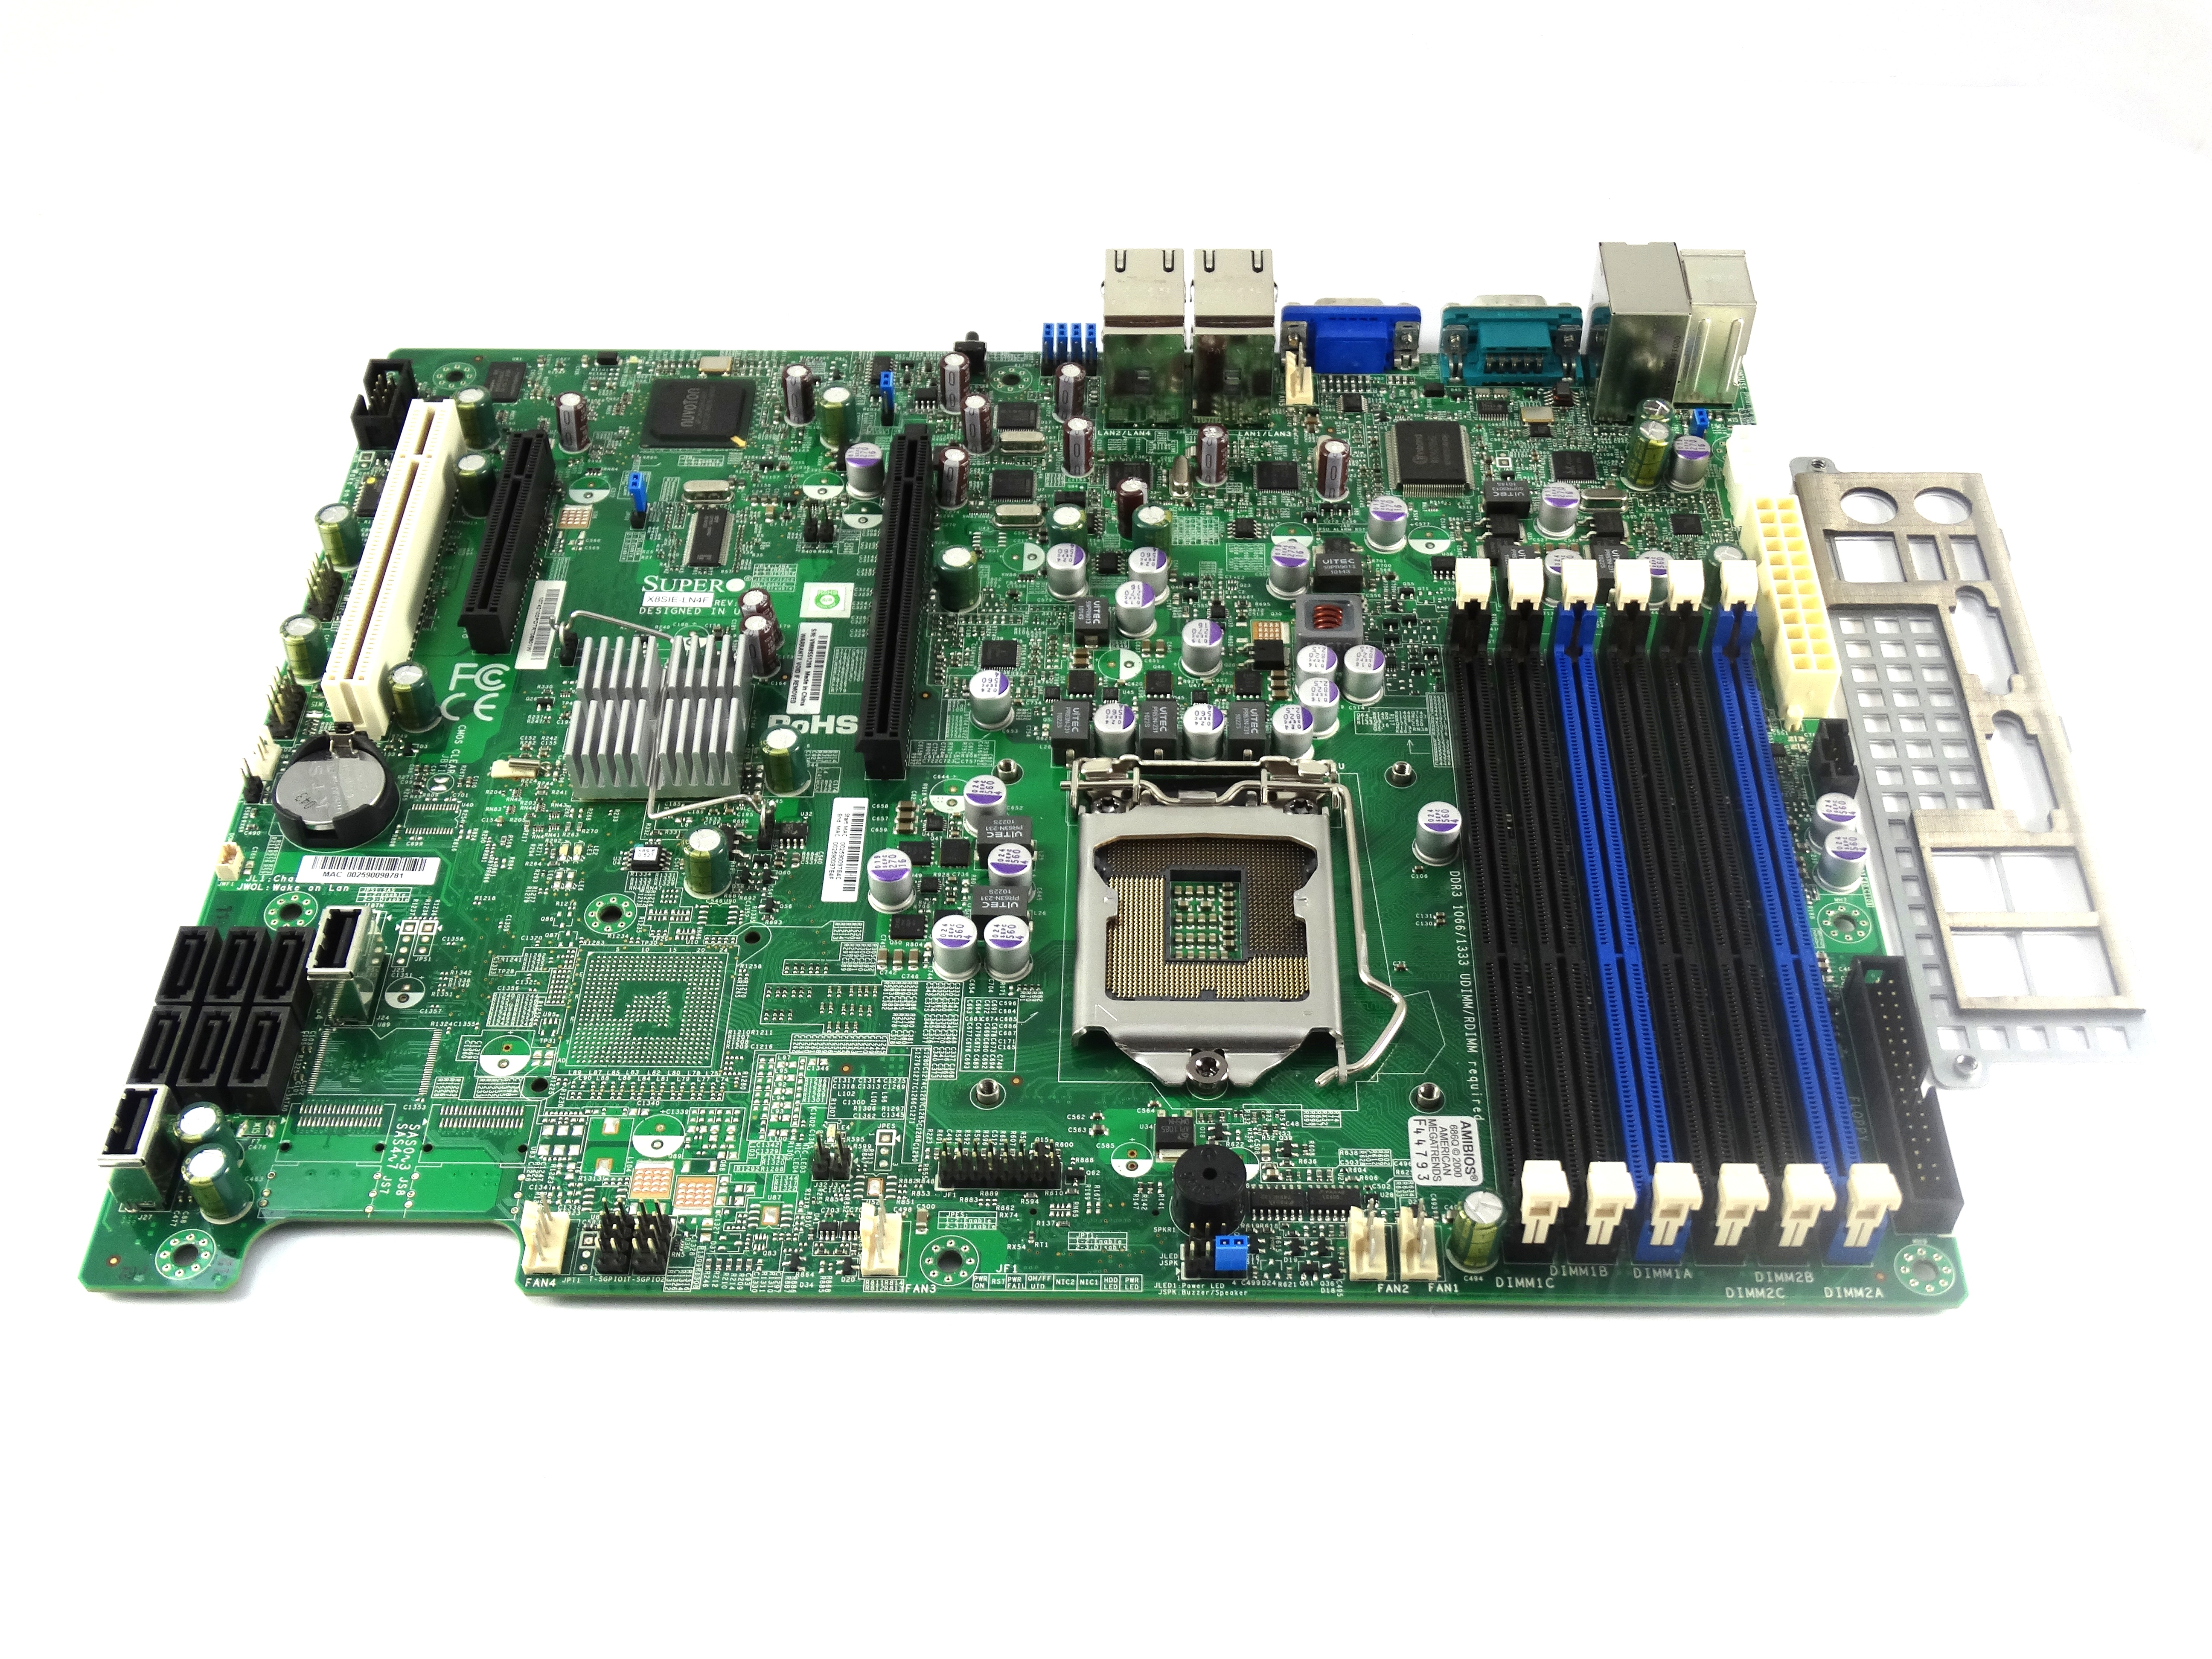 Supermicro Intel 3420 Chipset ATX Server Motherboard (X8SIE-LN4F)